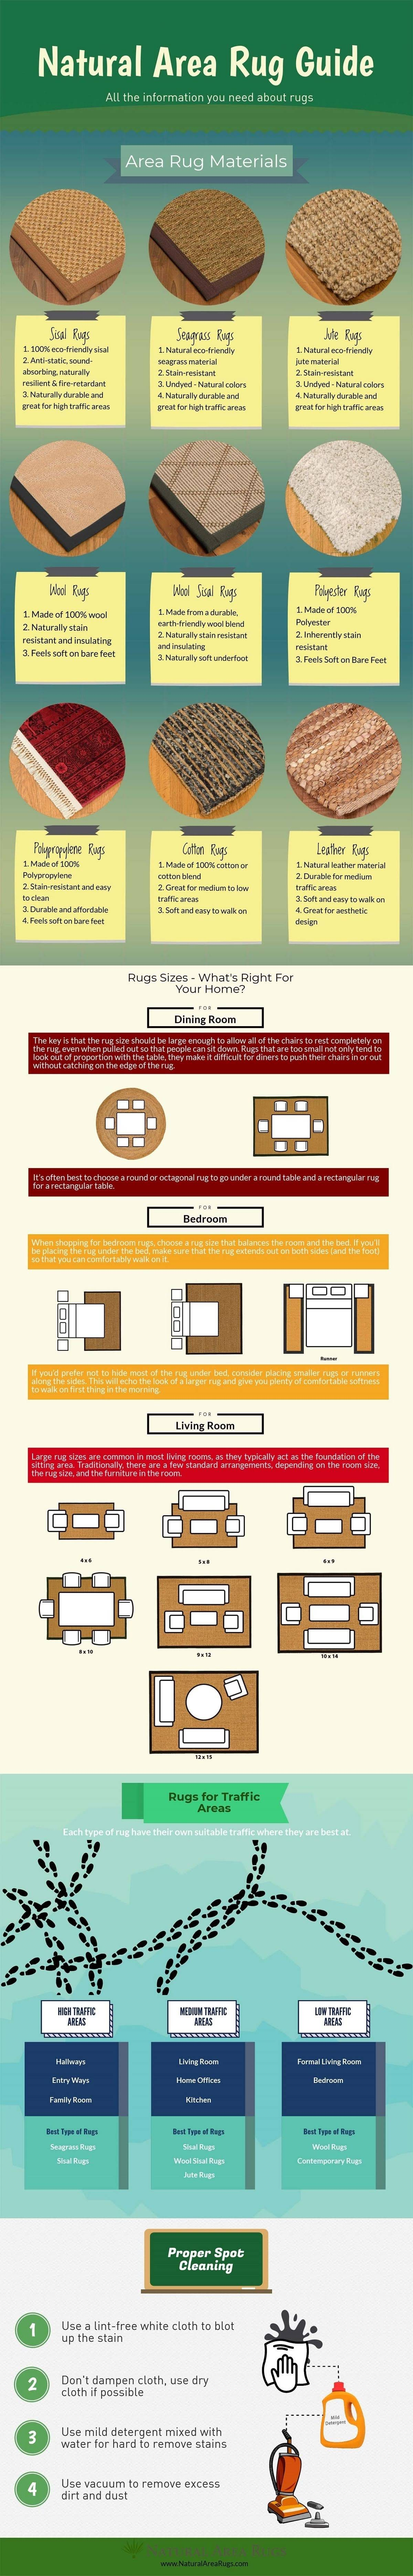 Natural Area Rug Guide: All The Information You Need Aboud Rugs #infographic